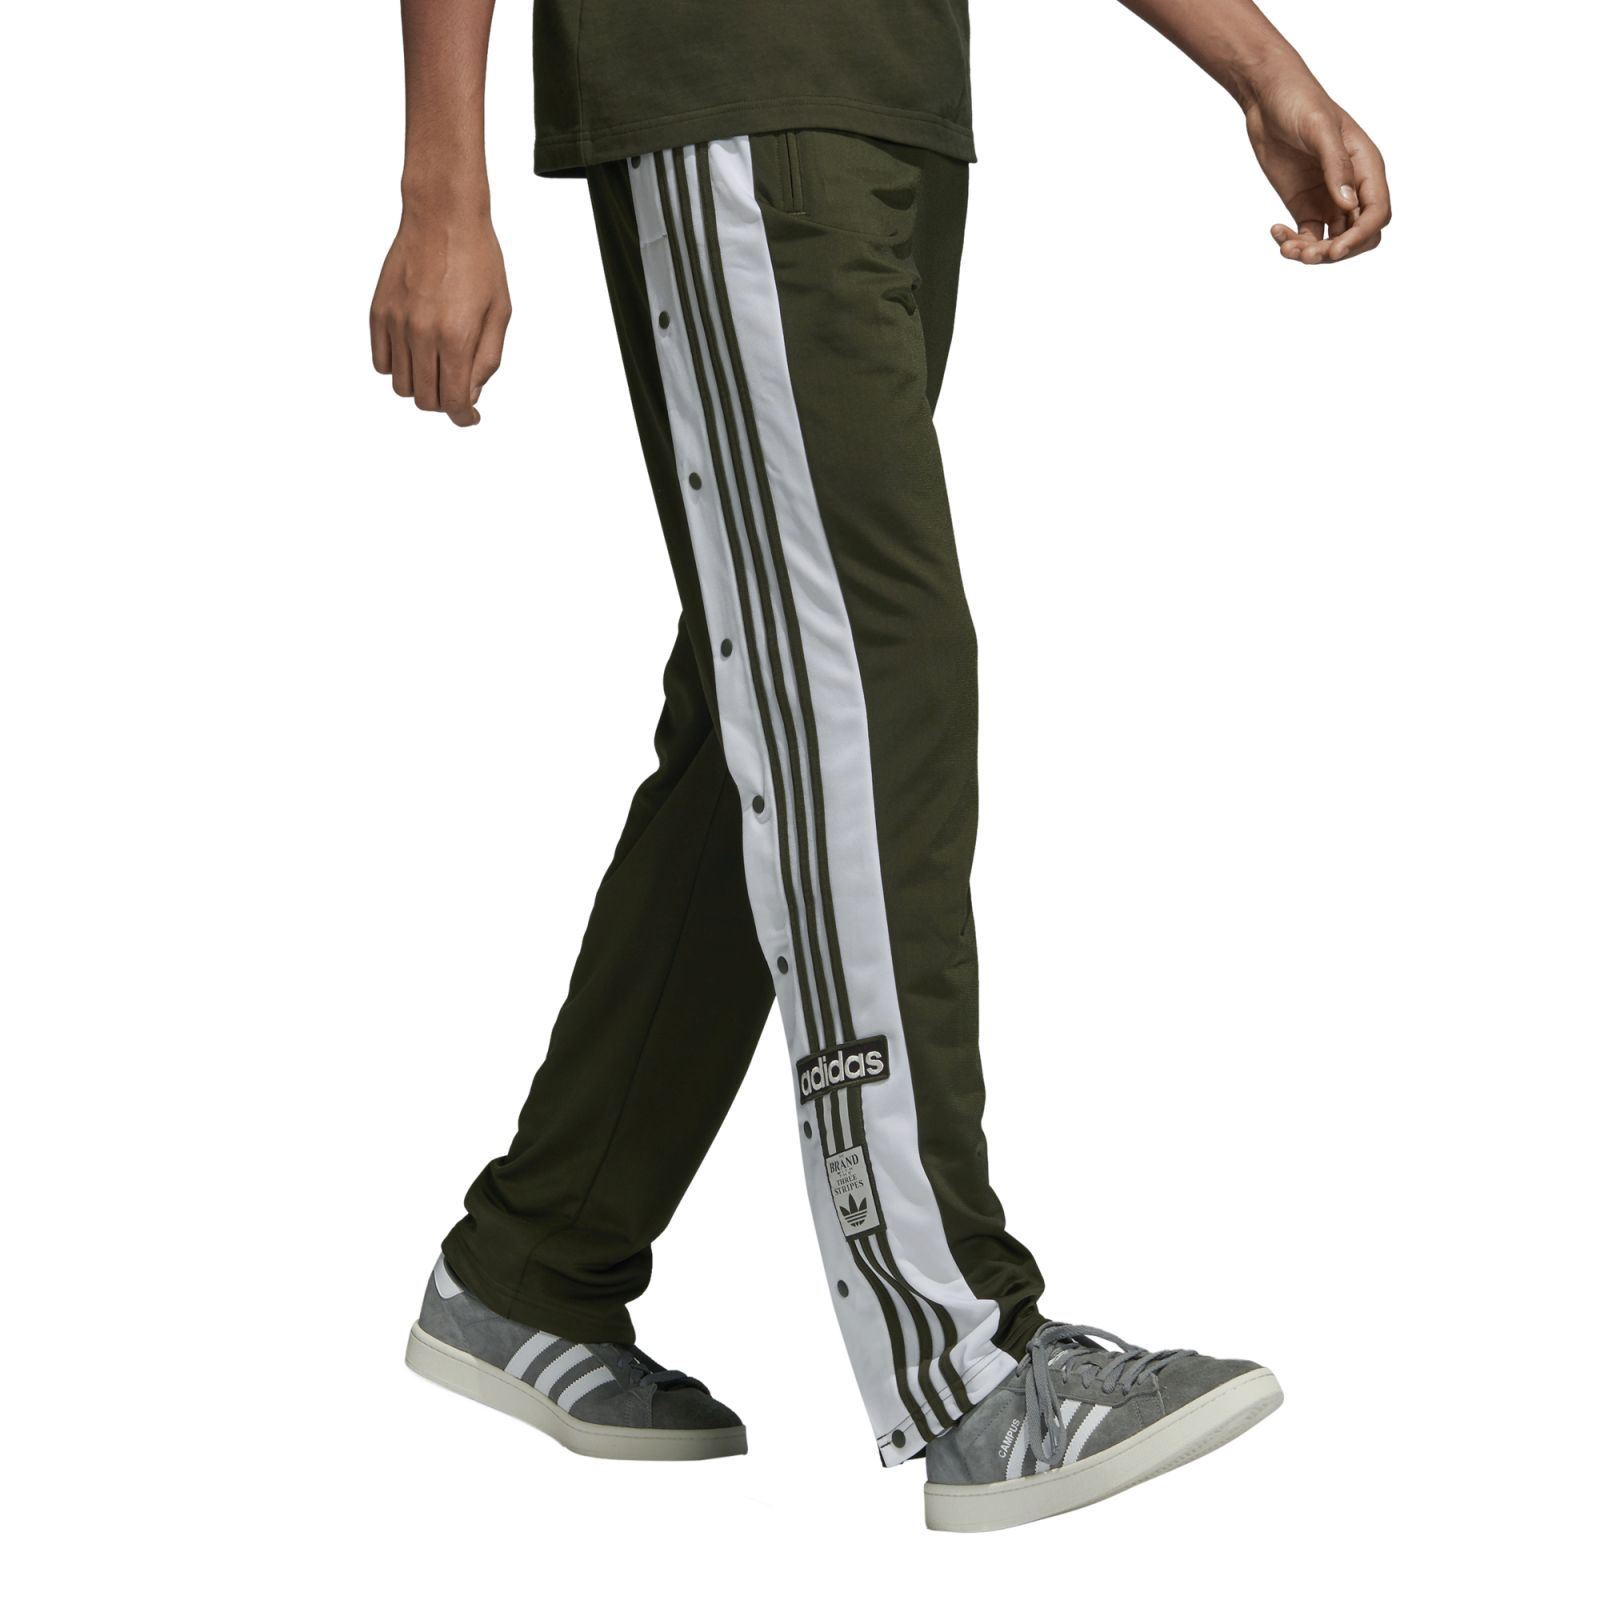 Joggingbroek Groen.Adidas Originals Adibreak Joggingbroek Groen Brandalley